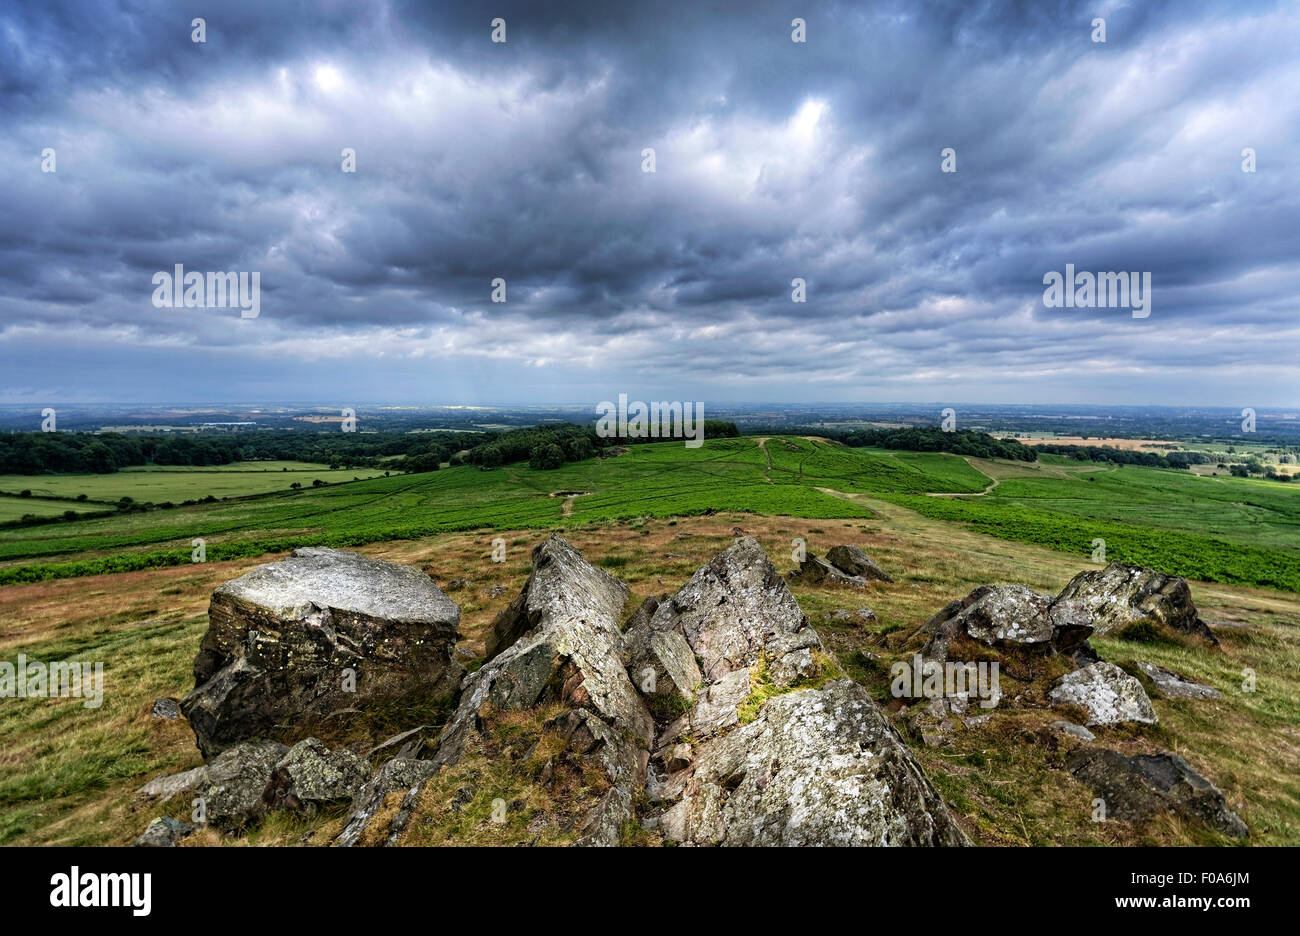 Bradgate Park is a public park in Charnwood Forest, in Leicestershire, England, northwest of Leicester. - Stock Image